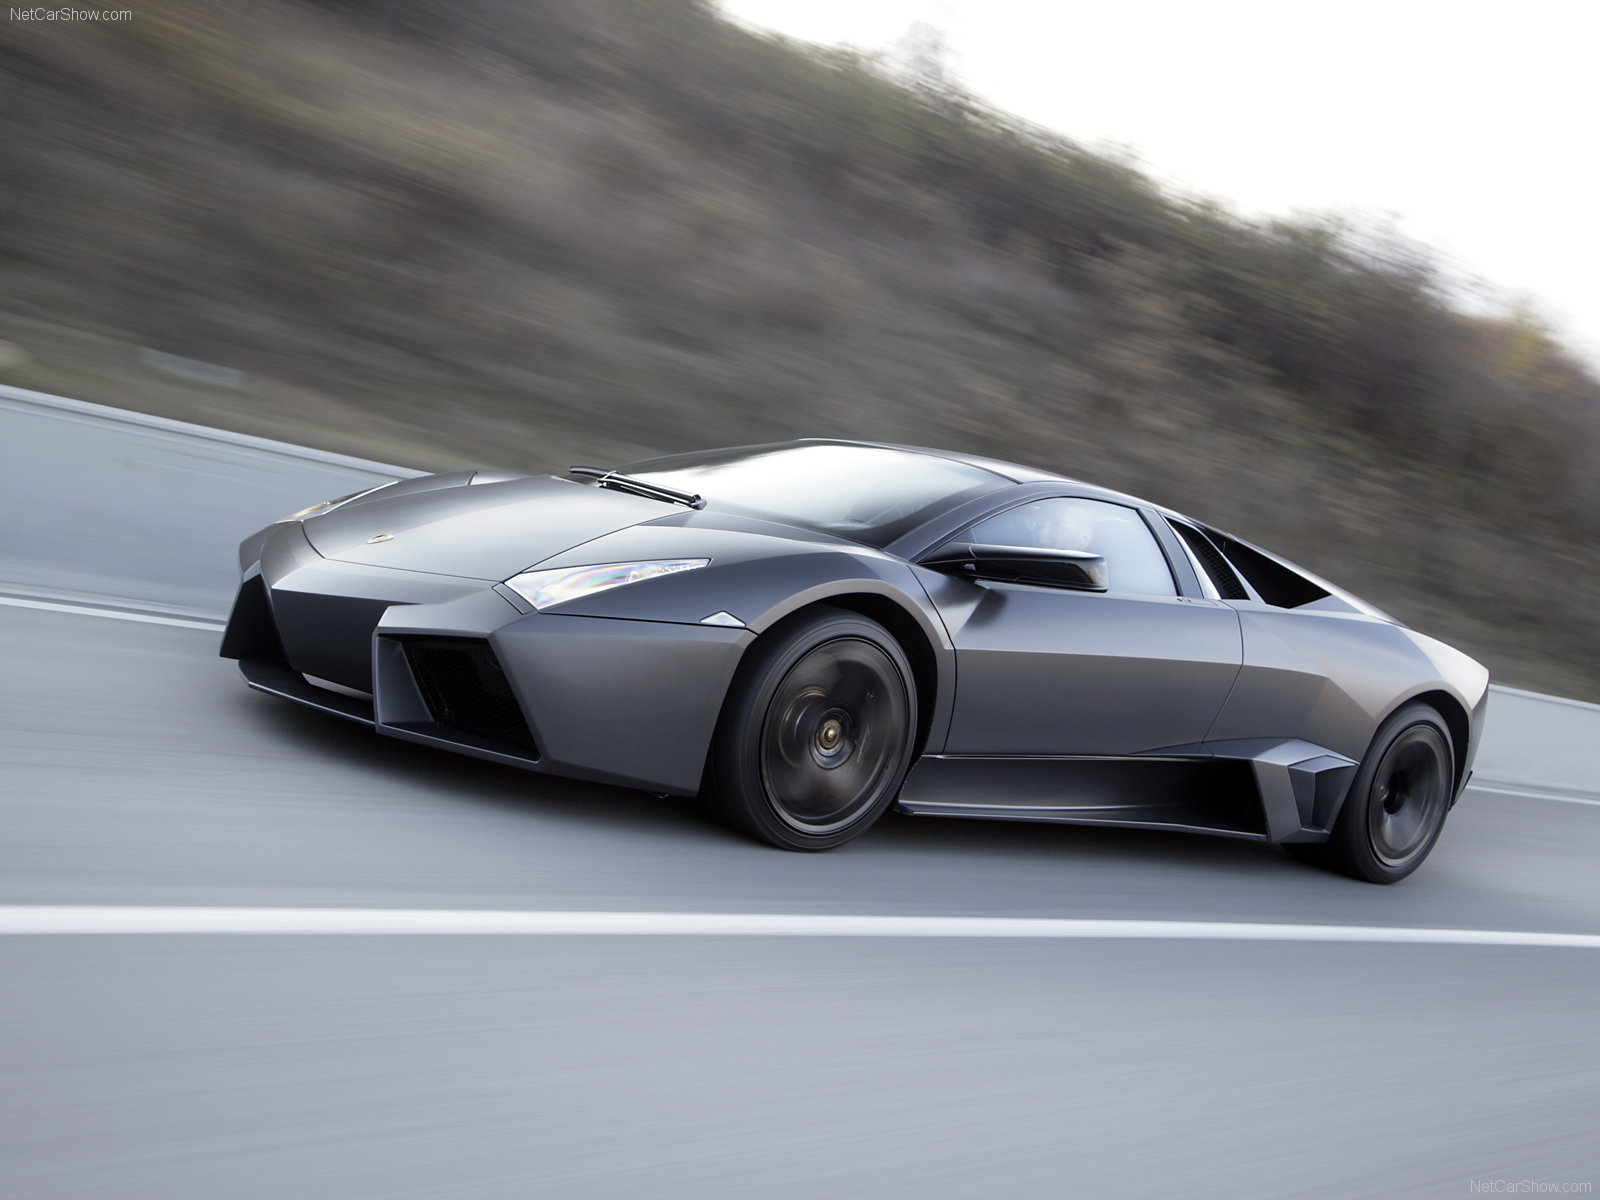 Lamborghini Reventon Hot Pursuit For Desktop - lamborghini reventon hot pursuit wallpapers